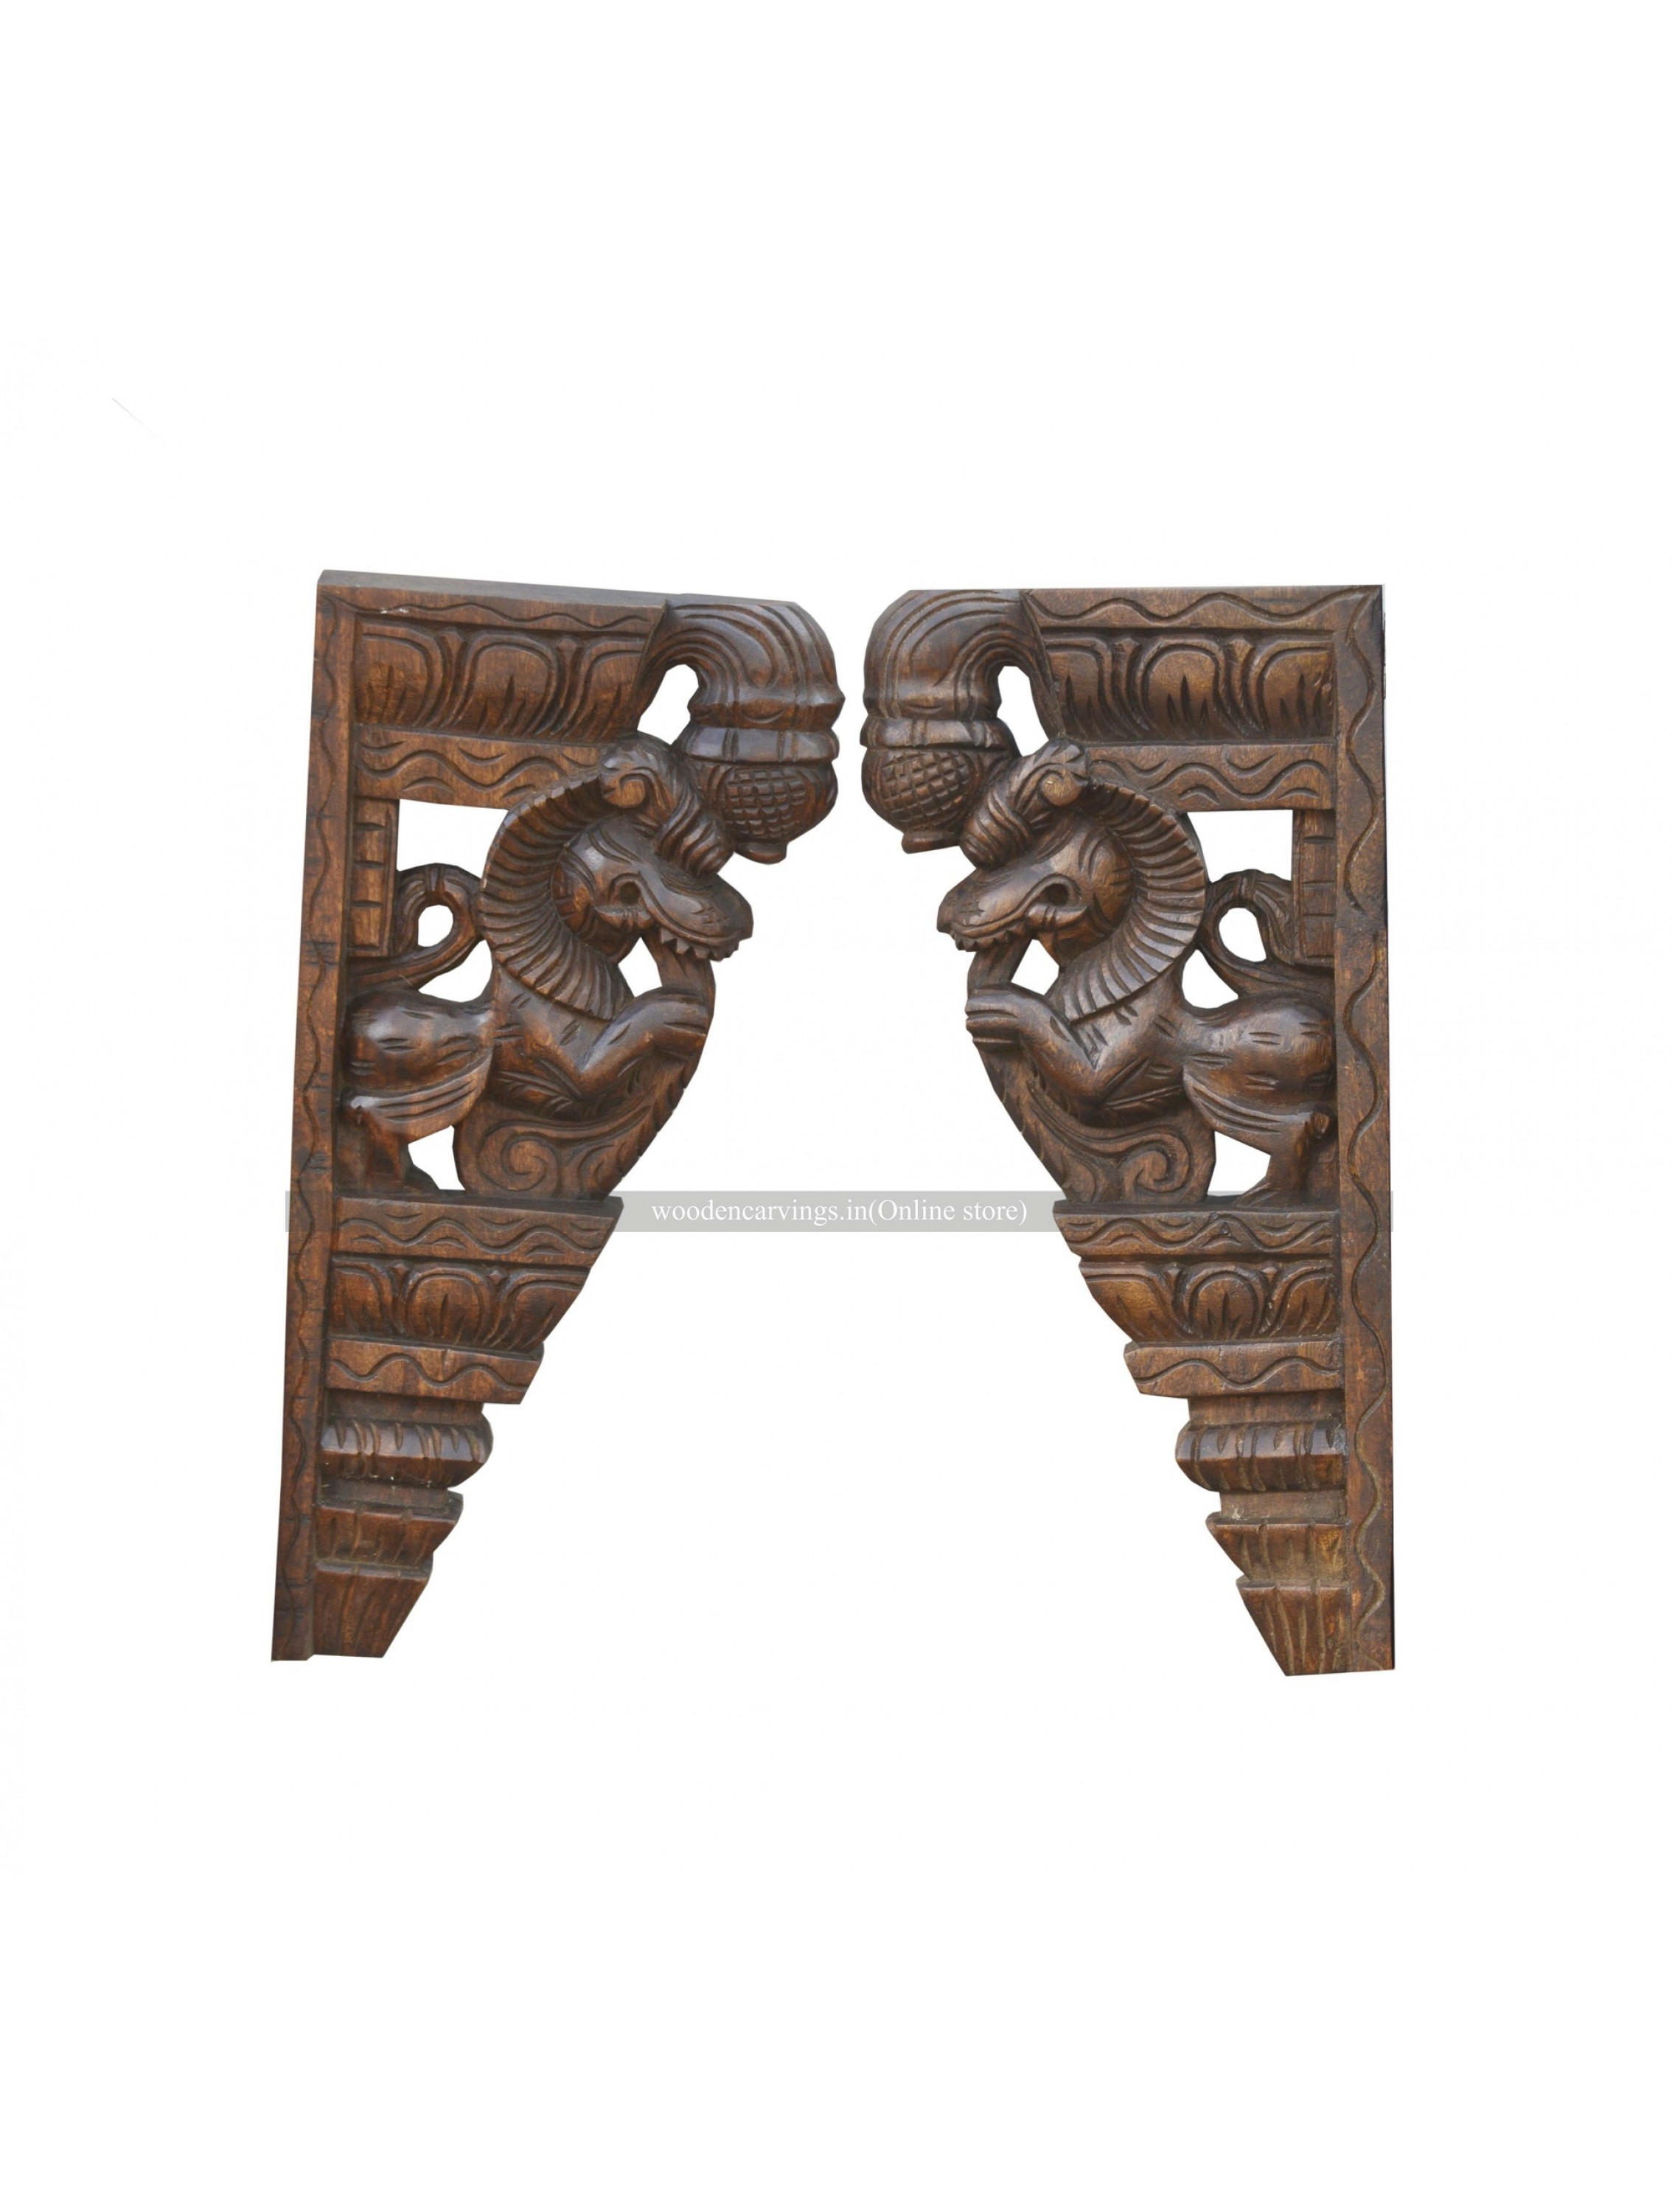 Wooden Pair of Yali Brackets